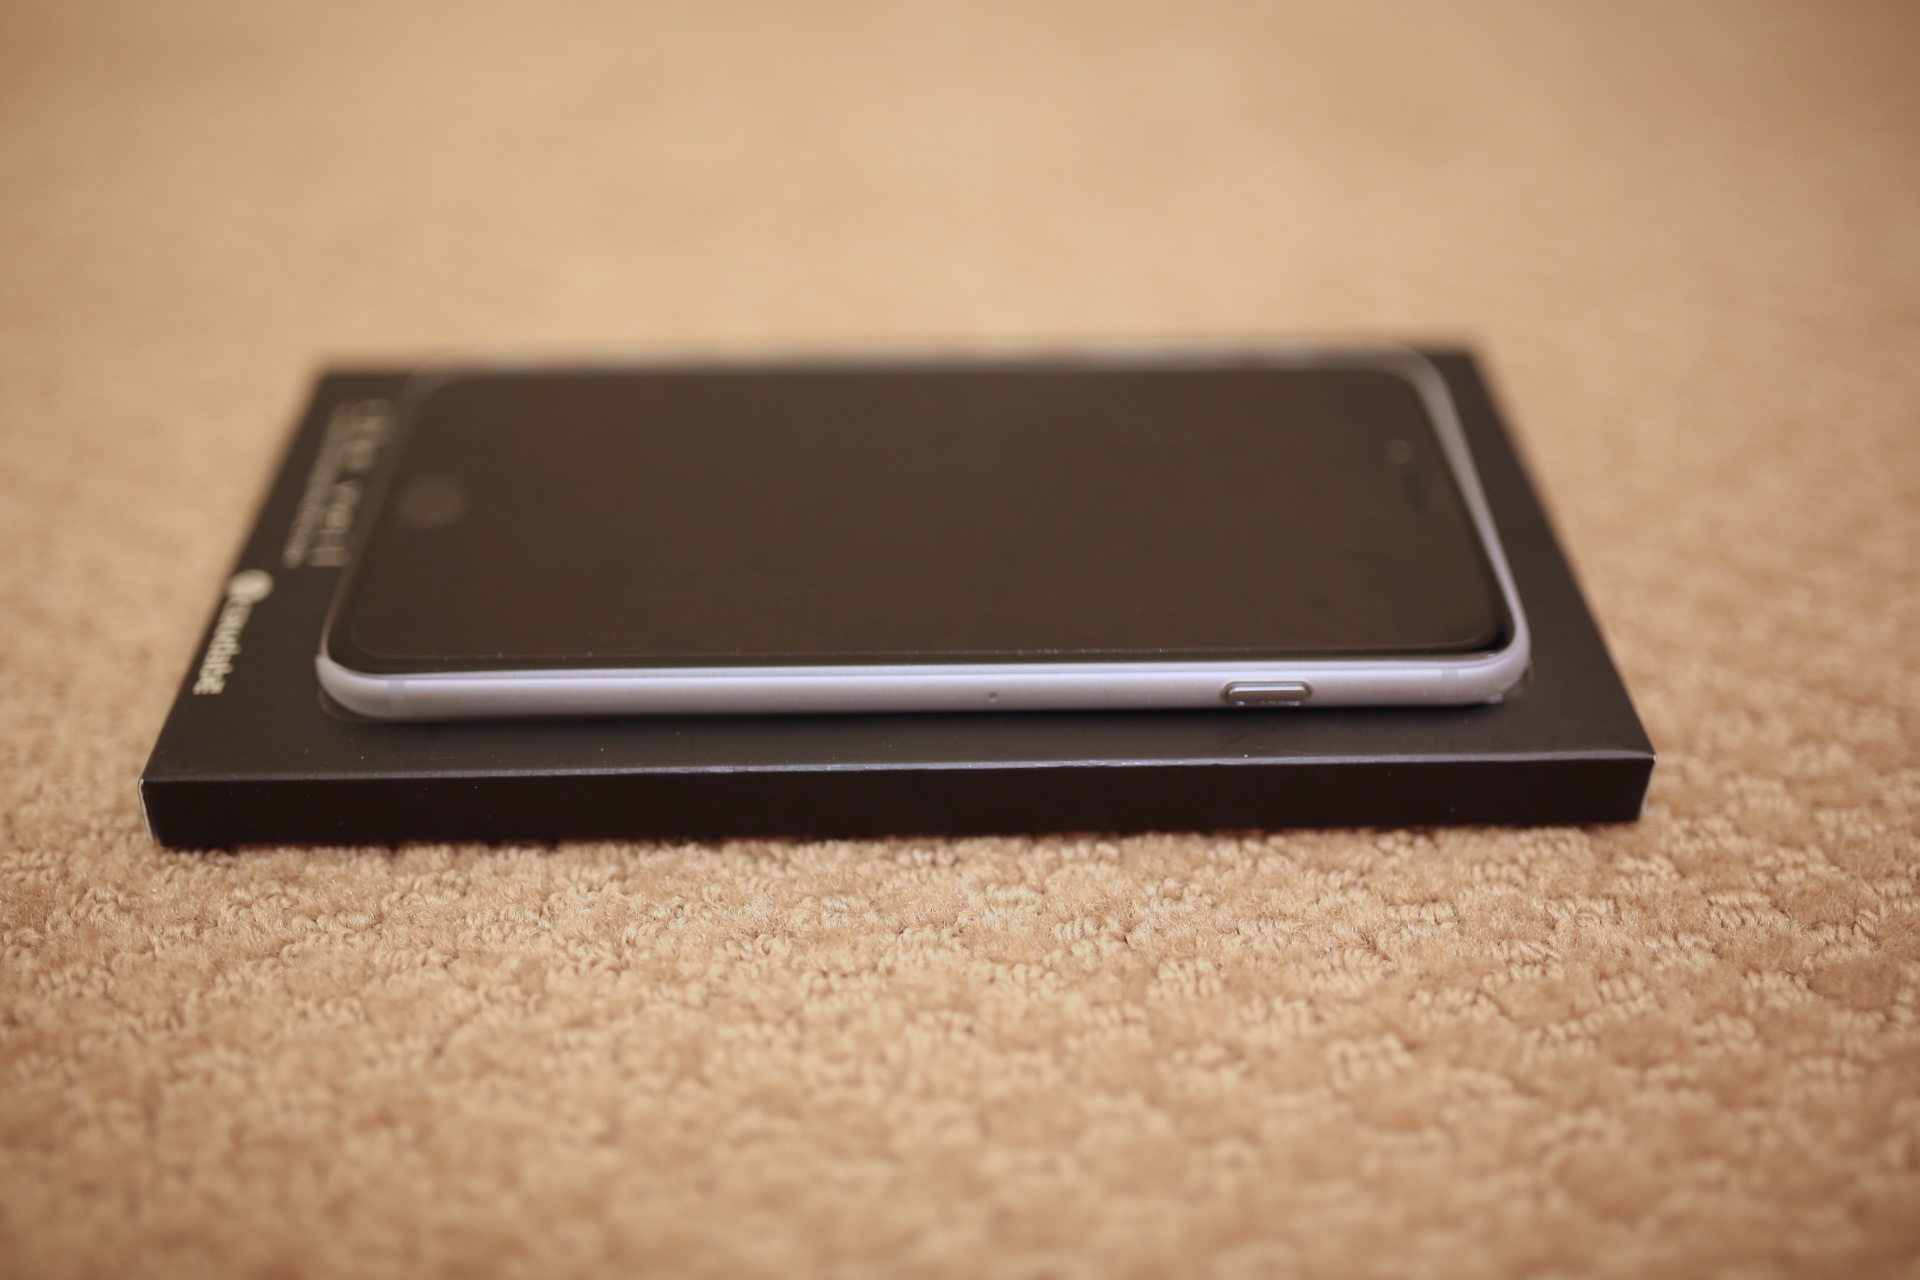 new product bb70e aab3f iPhone 6 - Caudabe Veil | Page 6 | MacRumors Forums